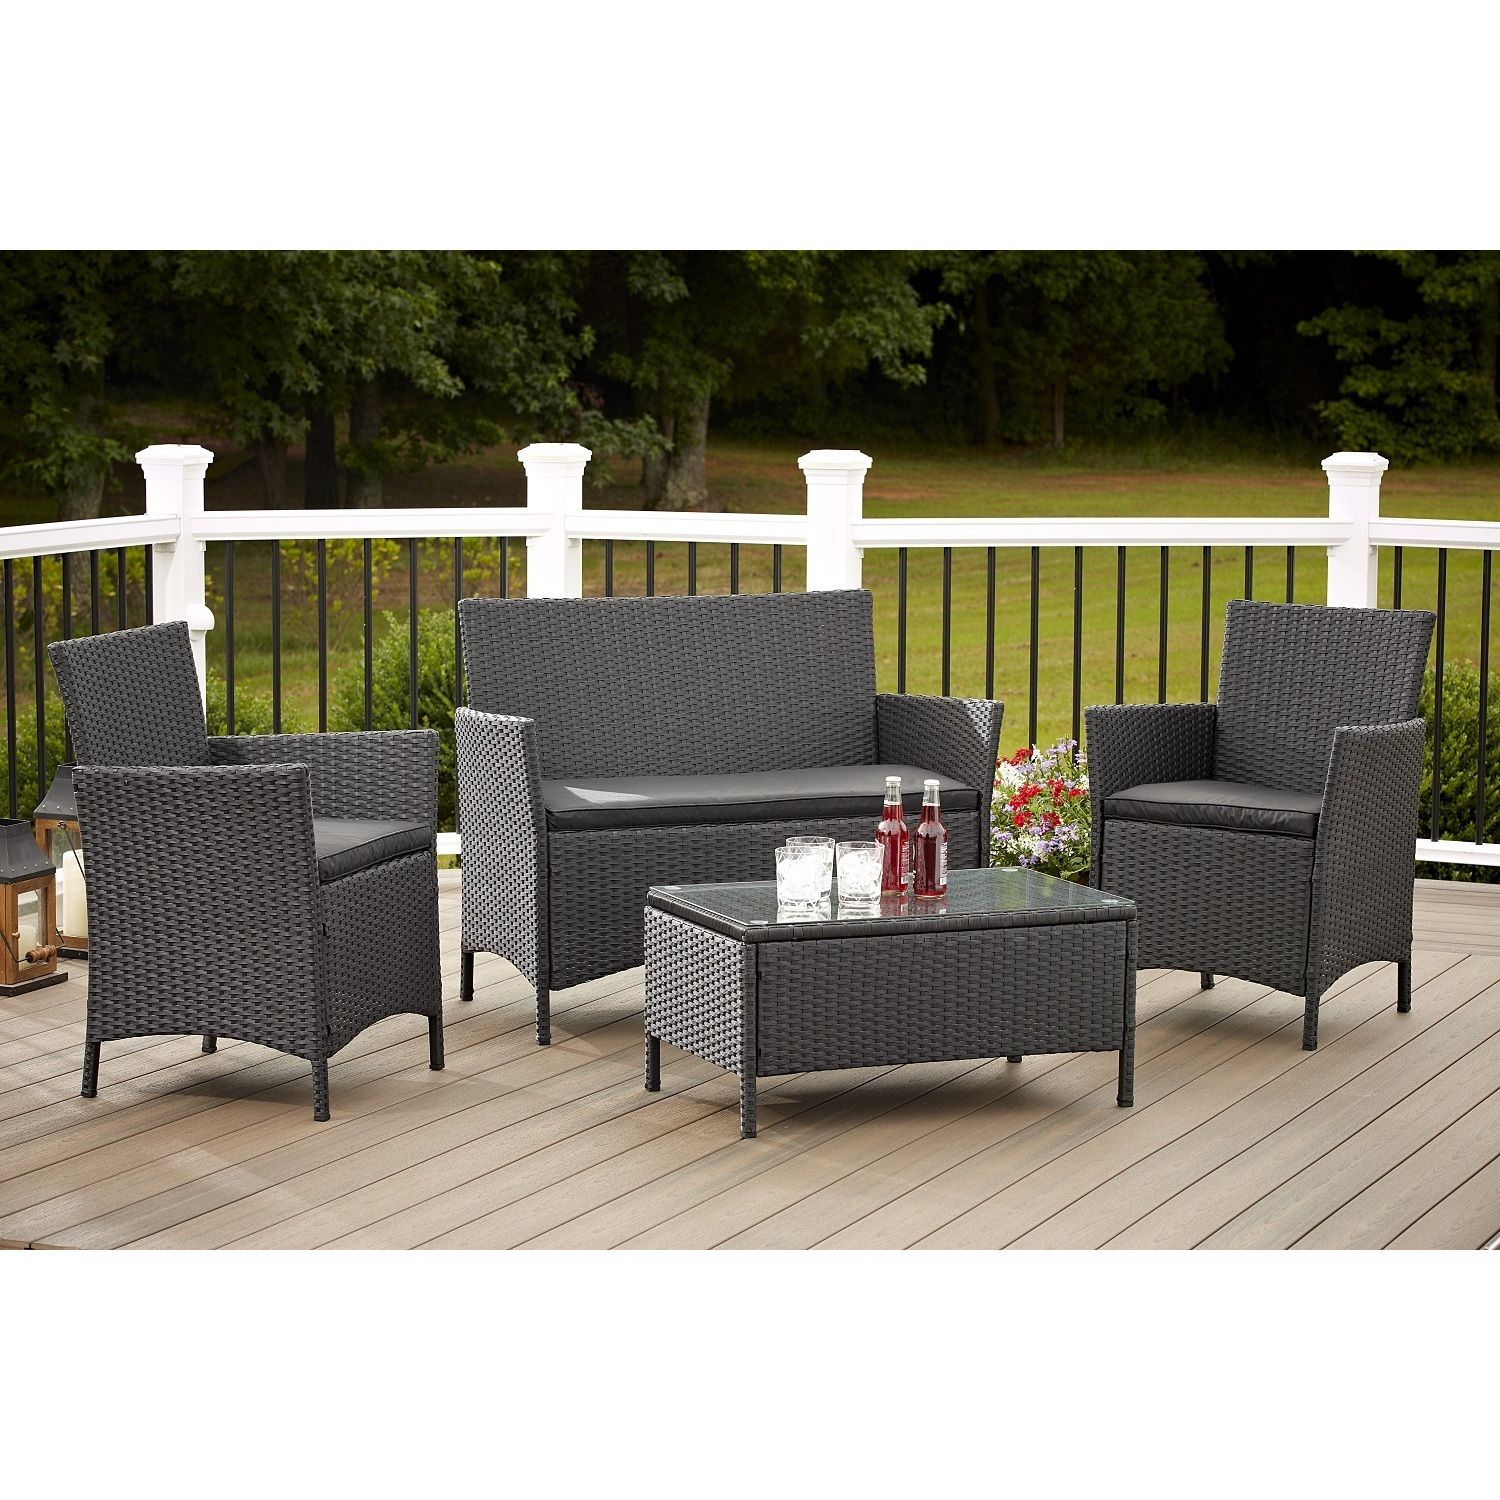 Avenue Greene 4 Piece Resin Wicker Deep Seating Patio